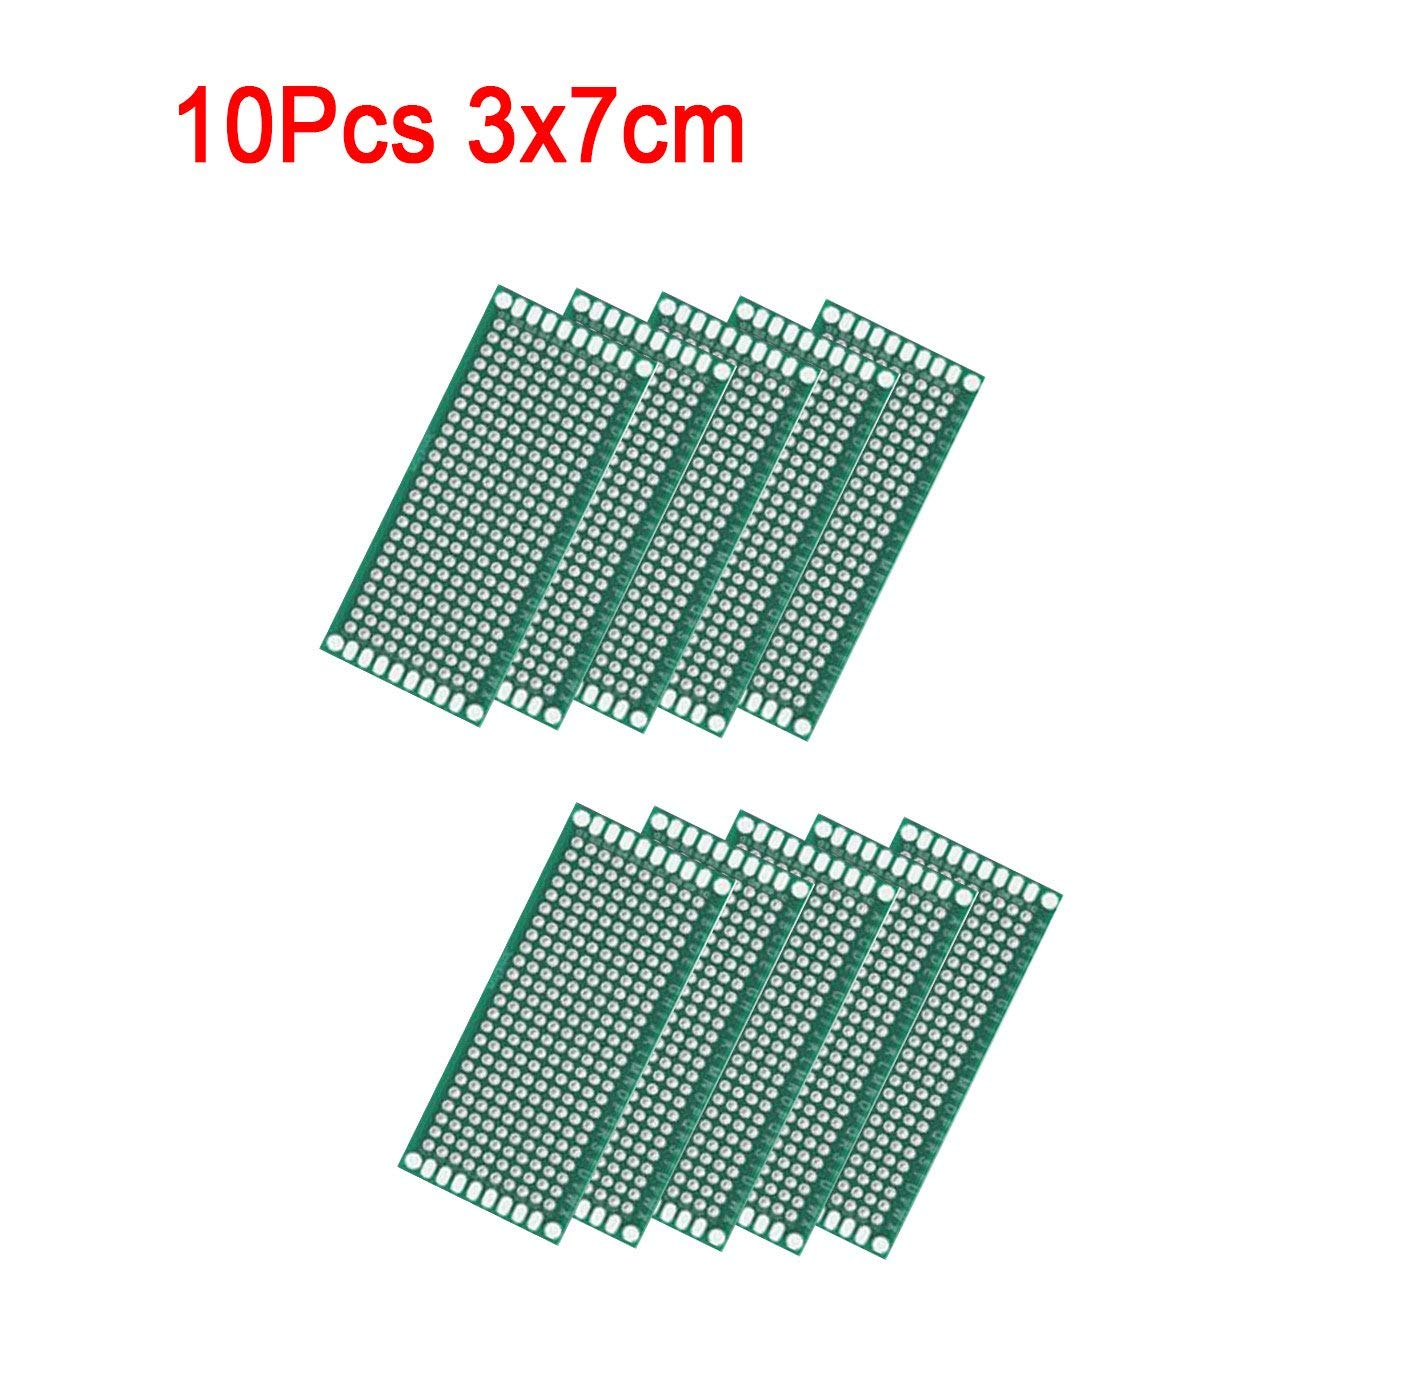 Cheap Double Sided Pcb Soldering Find Printed Circuit Board Get Quotations Karcy 10pcs Universal Prototype For Diy And Electronic